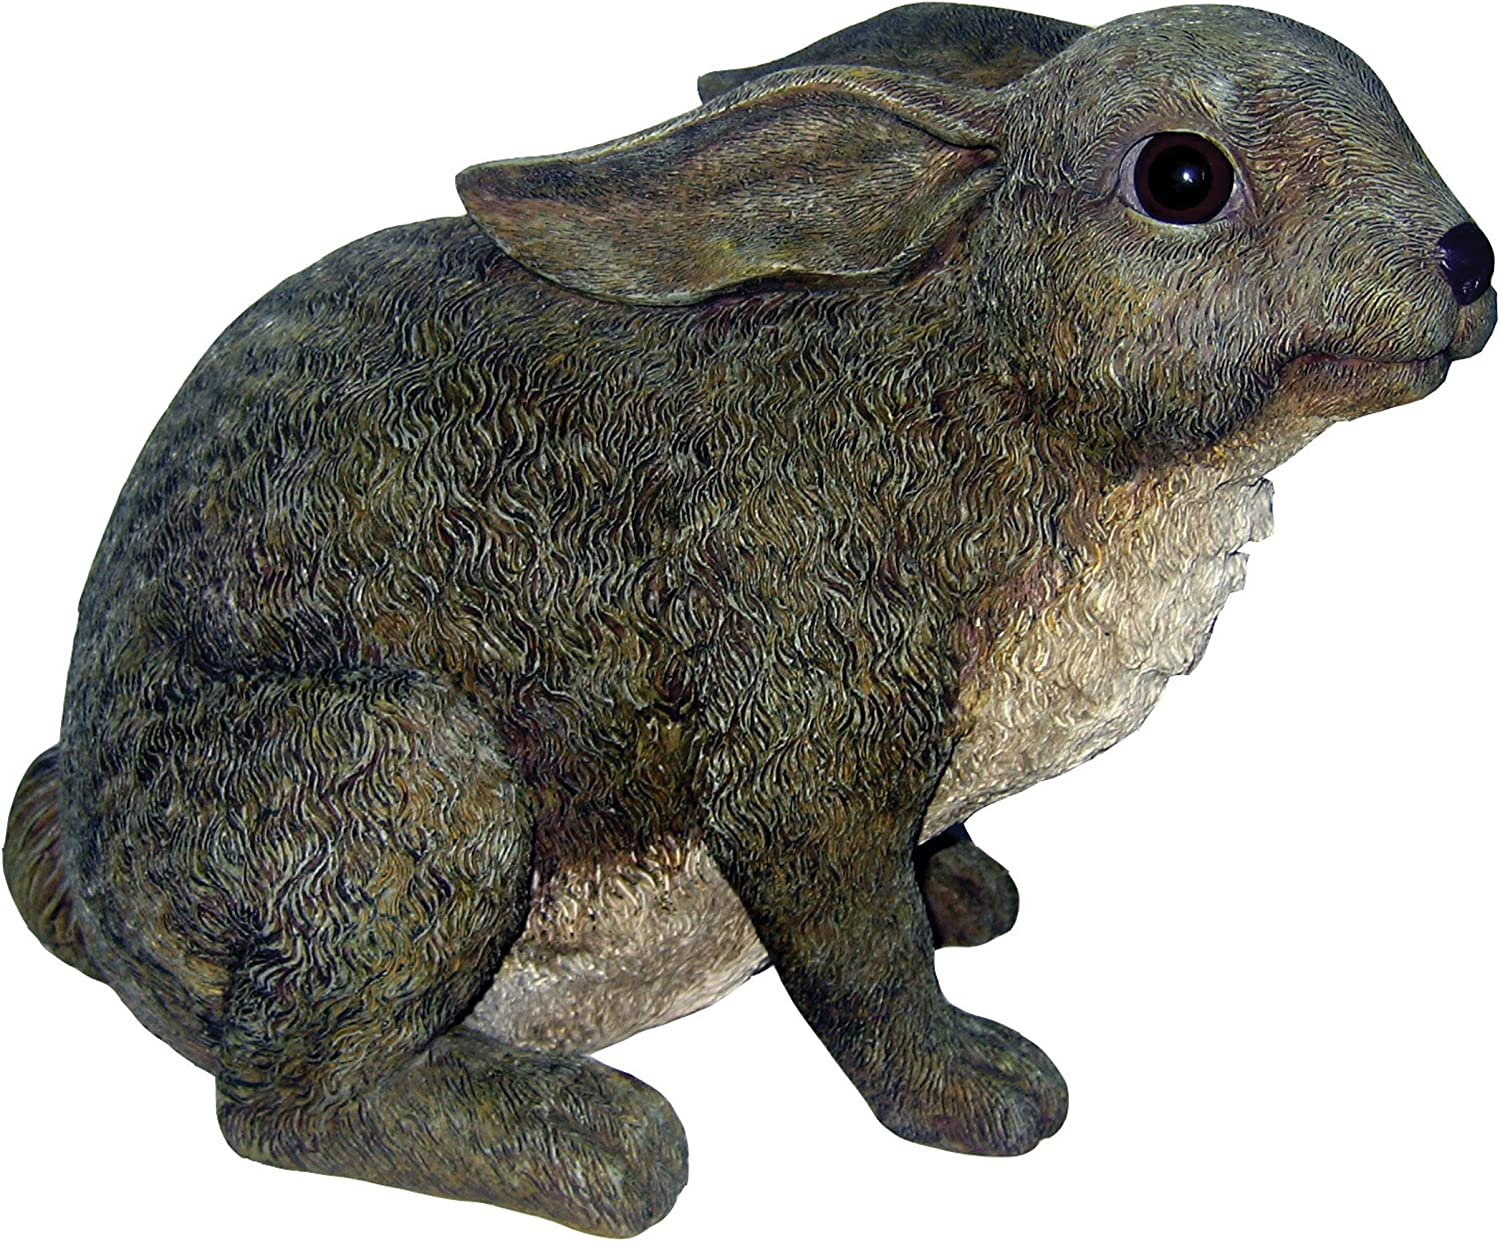 Some reservation online shopping Mama Rabbit Gray Family by Michael Carr Designs Outdoor -